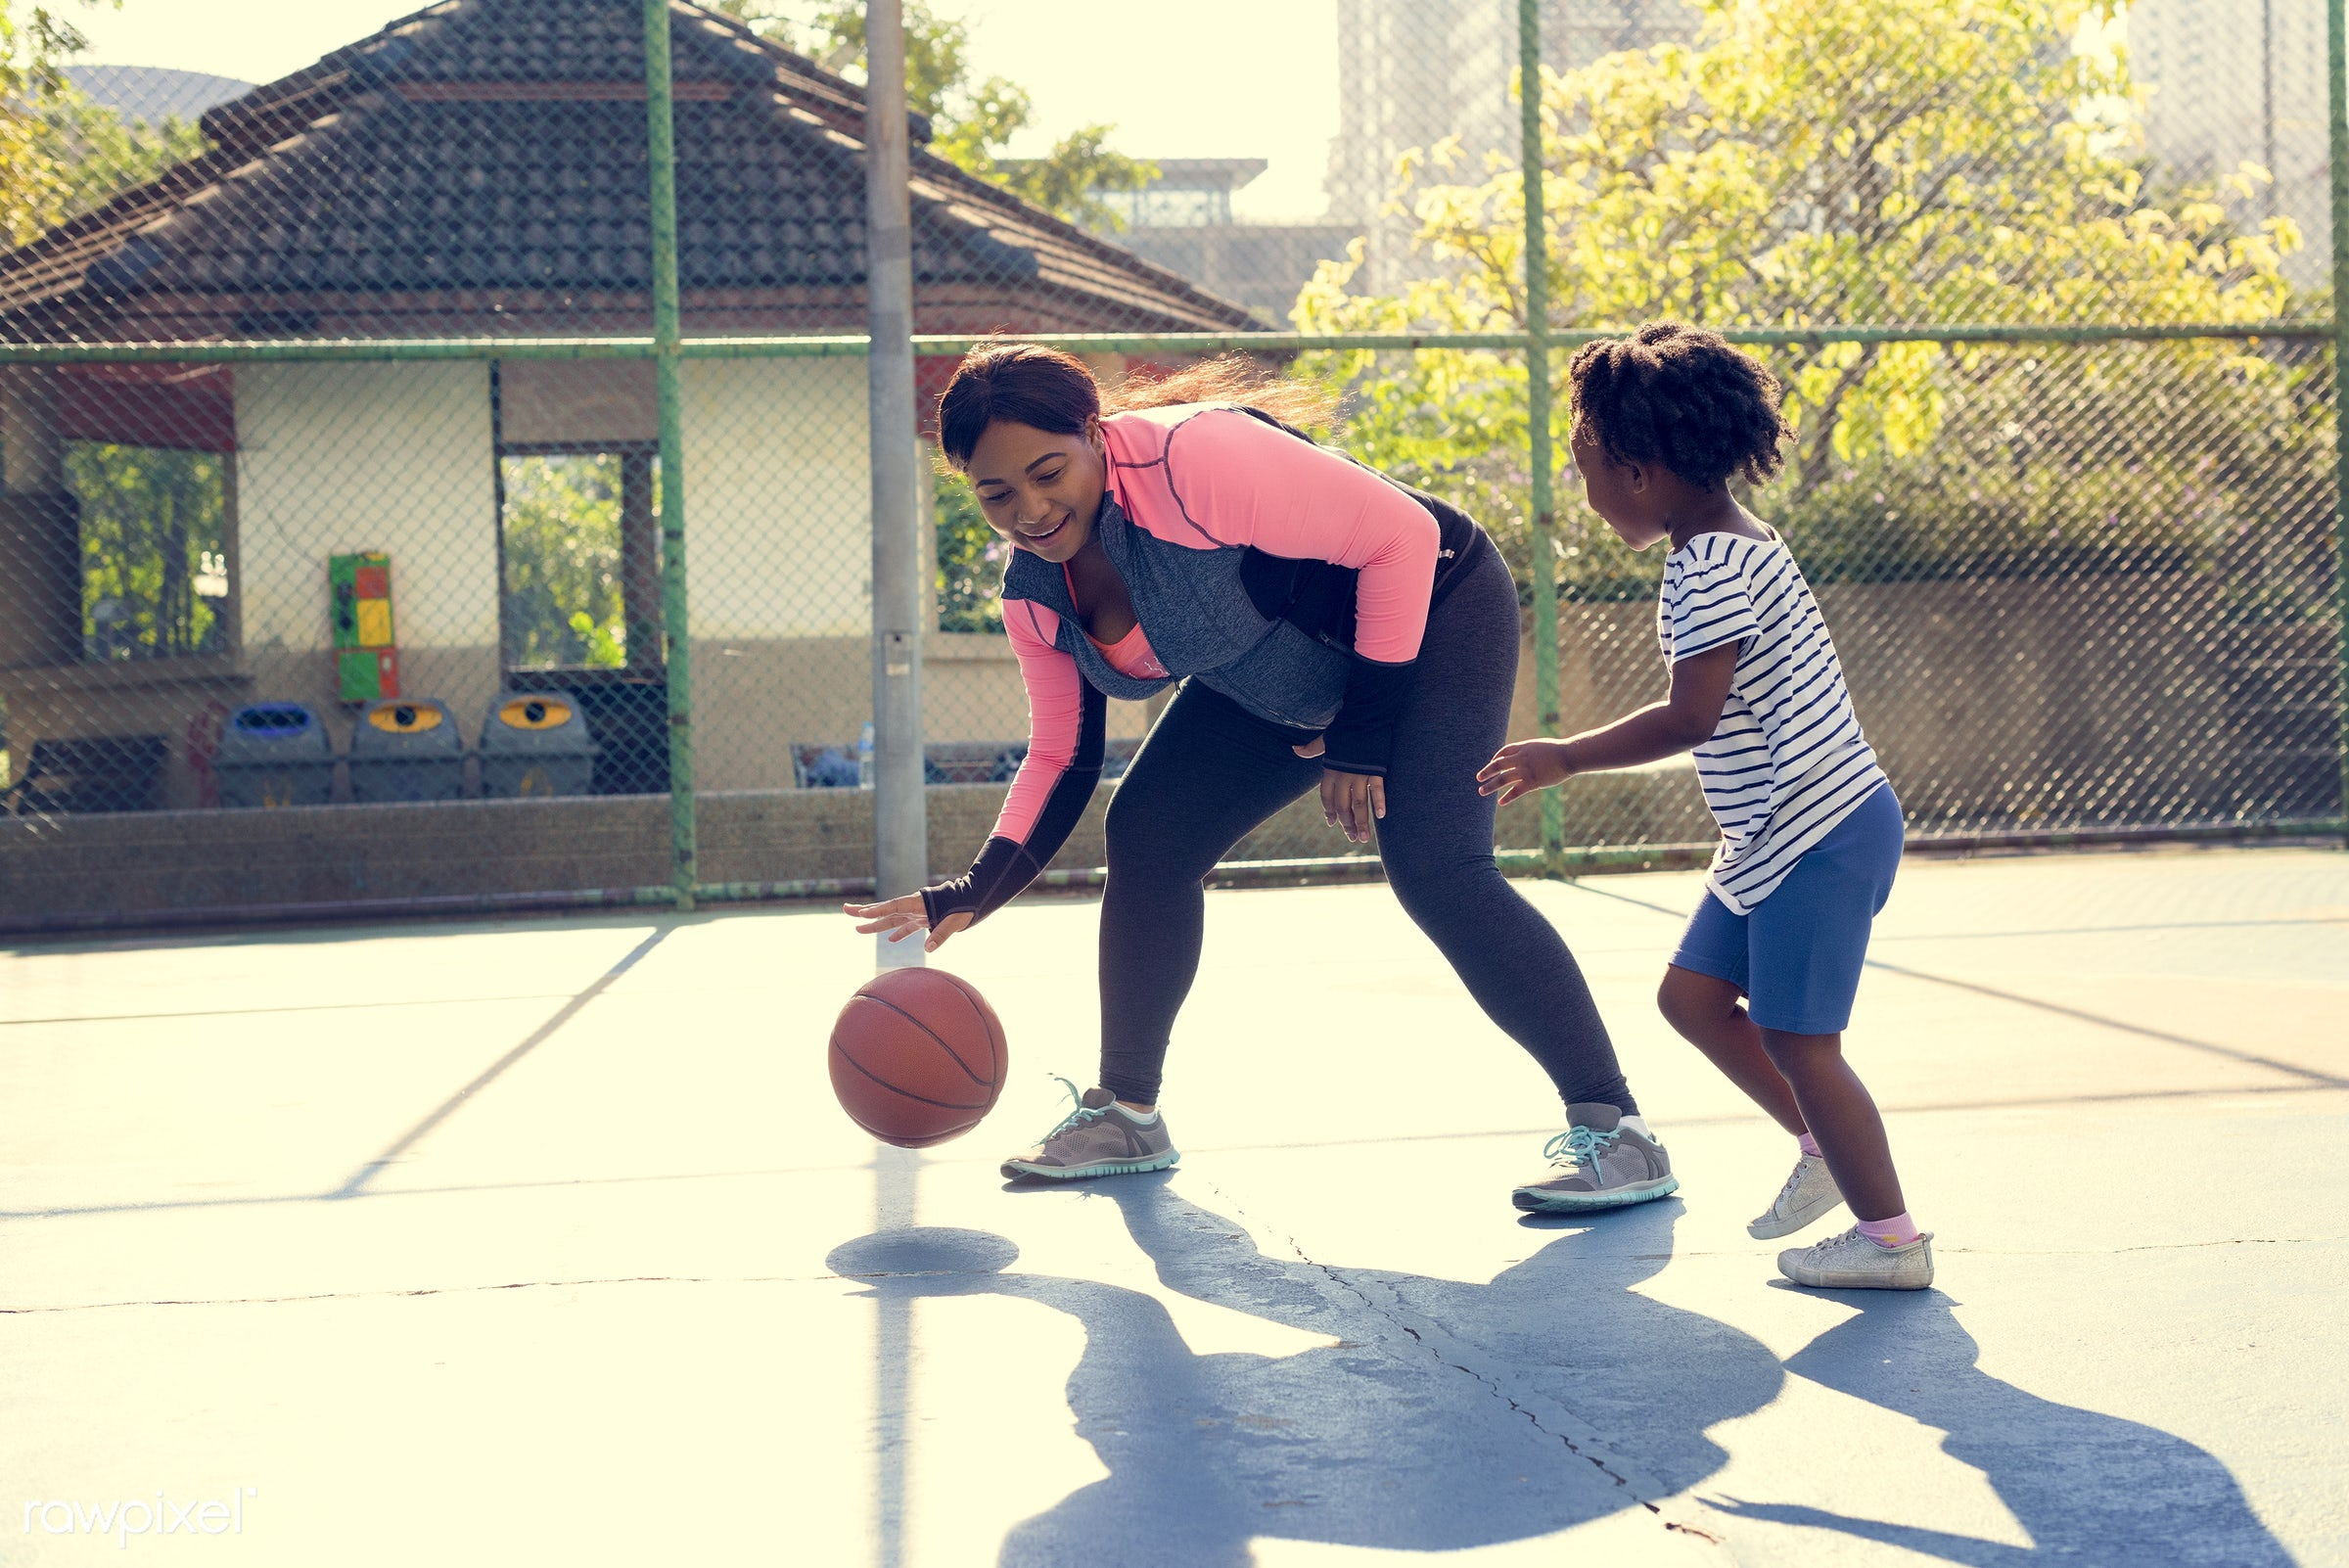 basketball, athletics, player, african, street, court, exercise, recreation, arena, family, activity, athlete, ball, play,...